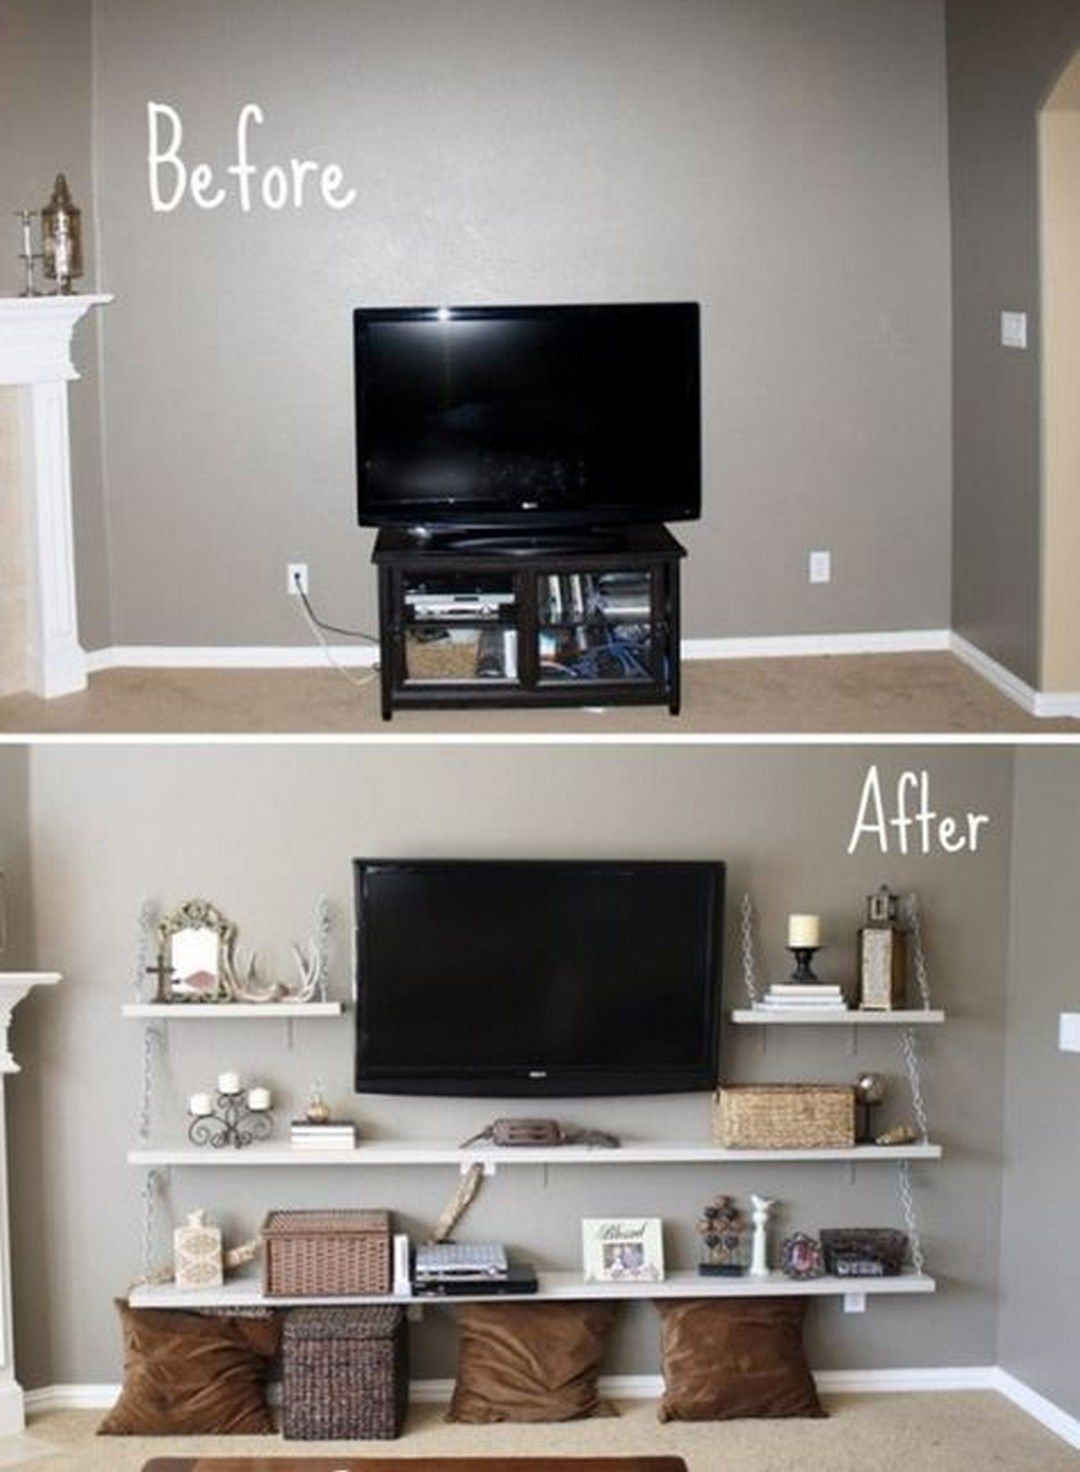 99 Diy Home Decor Ideas On A Budget You